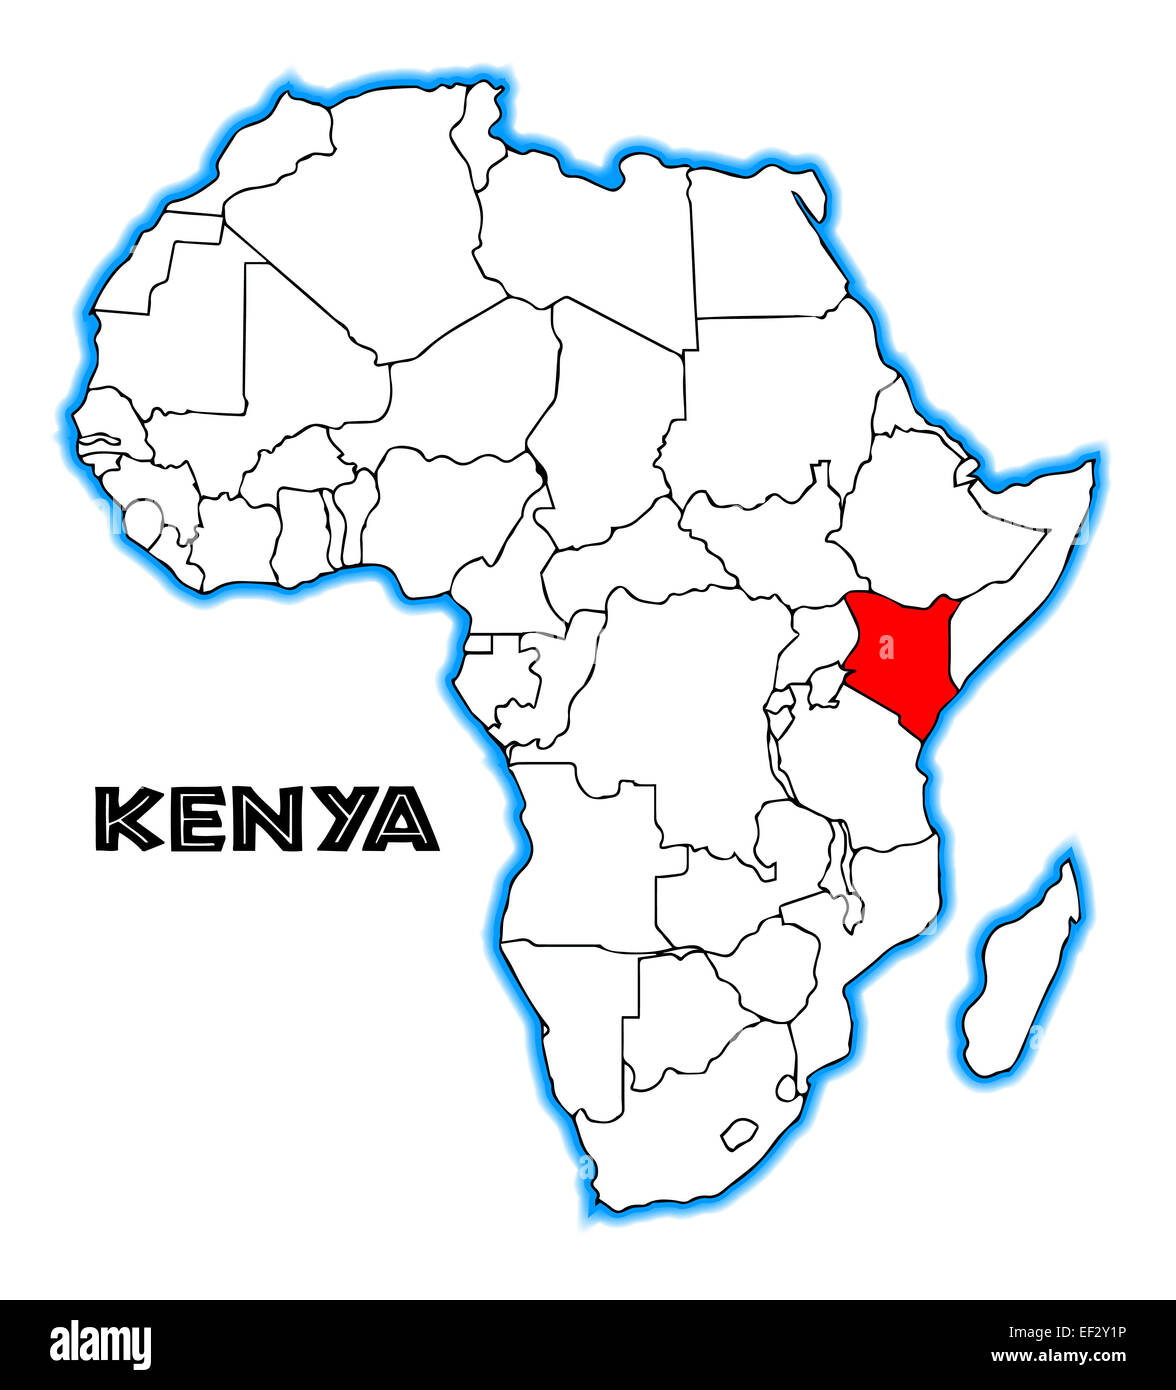 Kenya Outline Inset Into A Map Of Africa Over A White